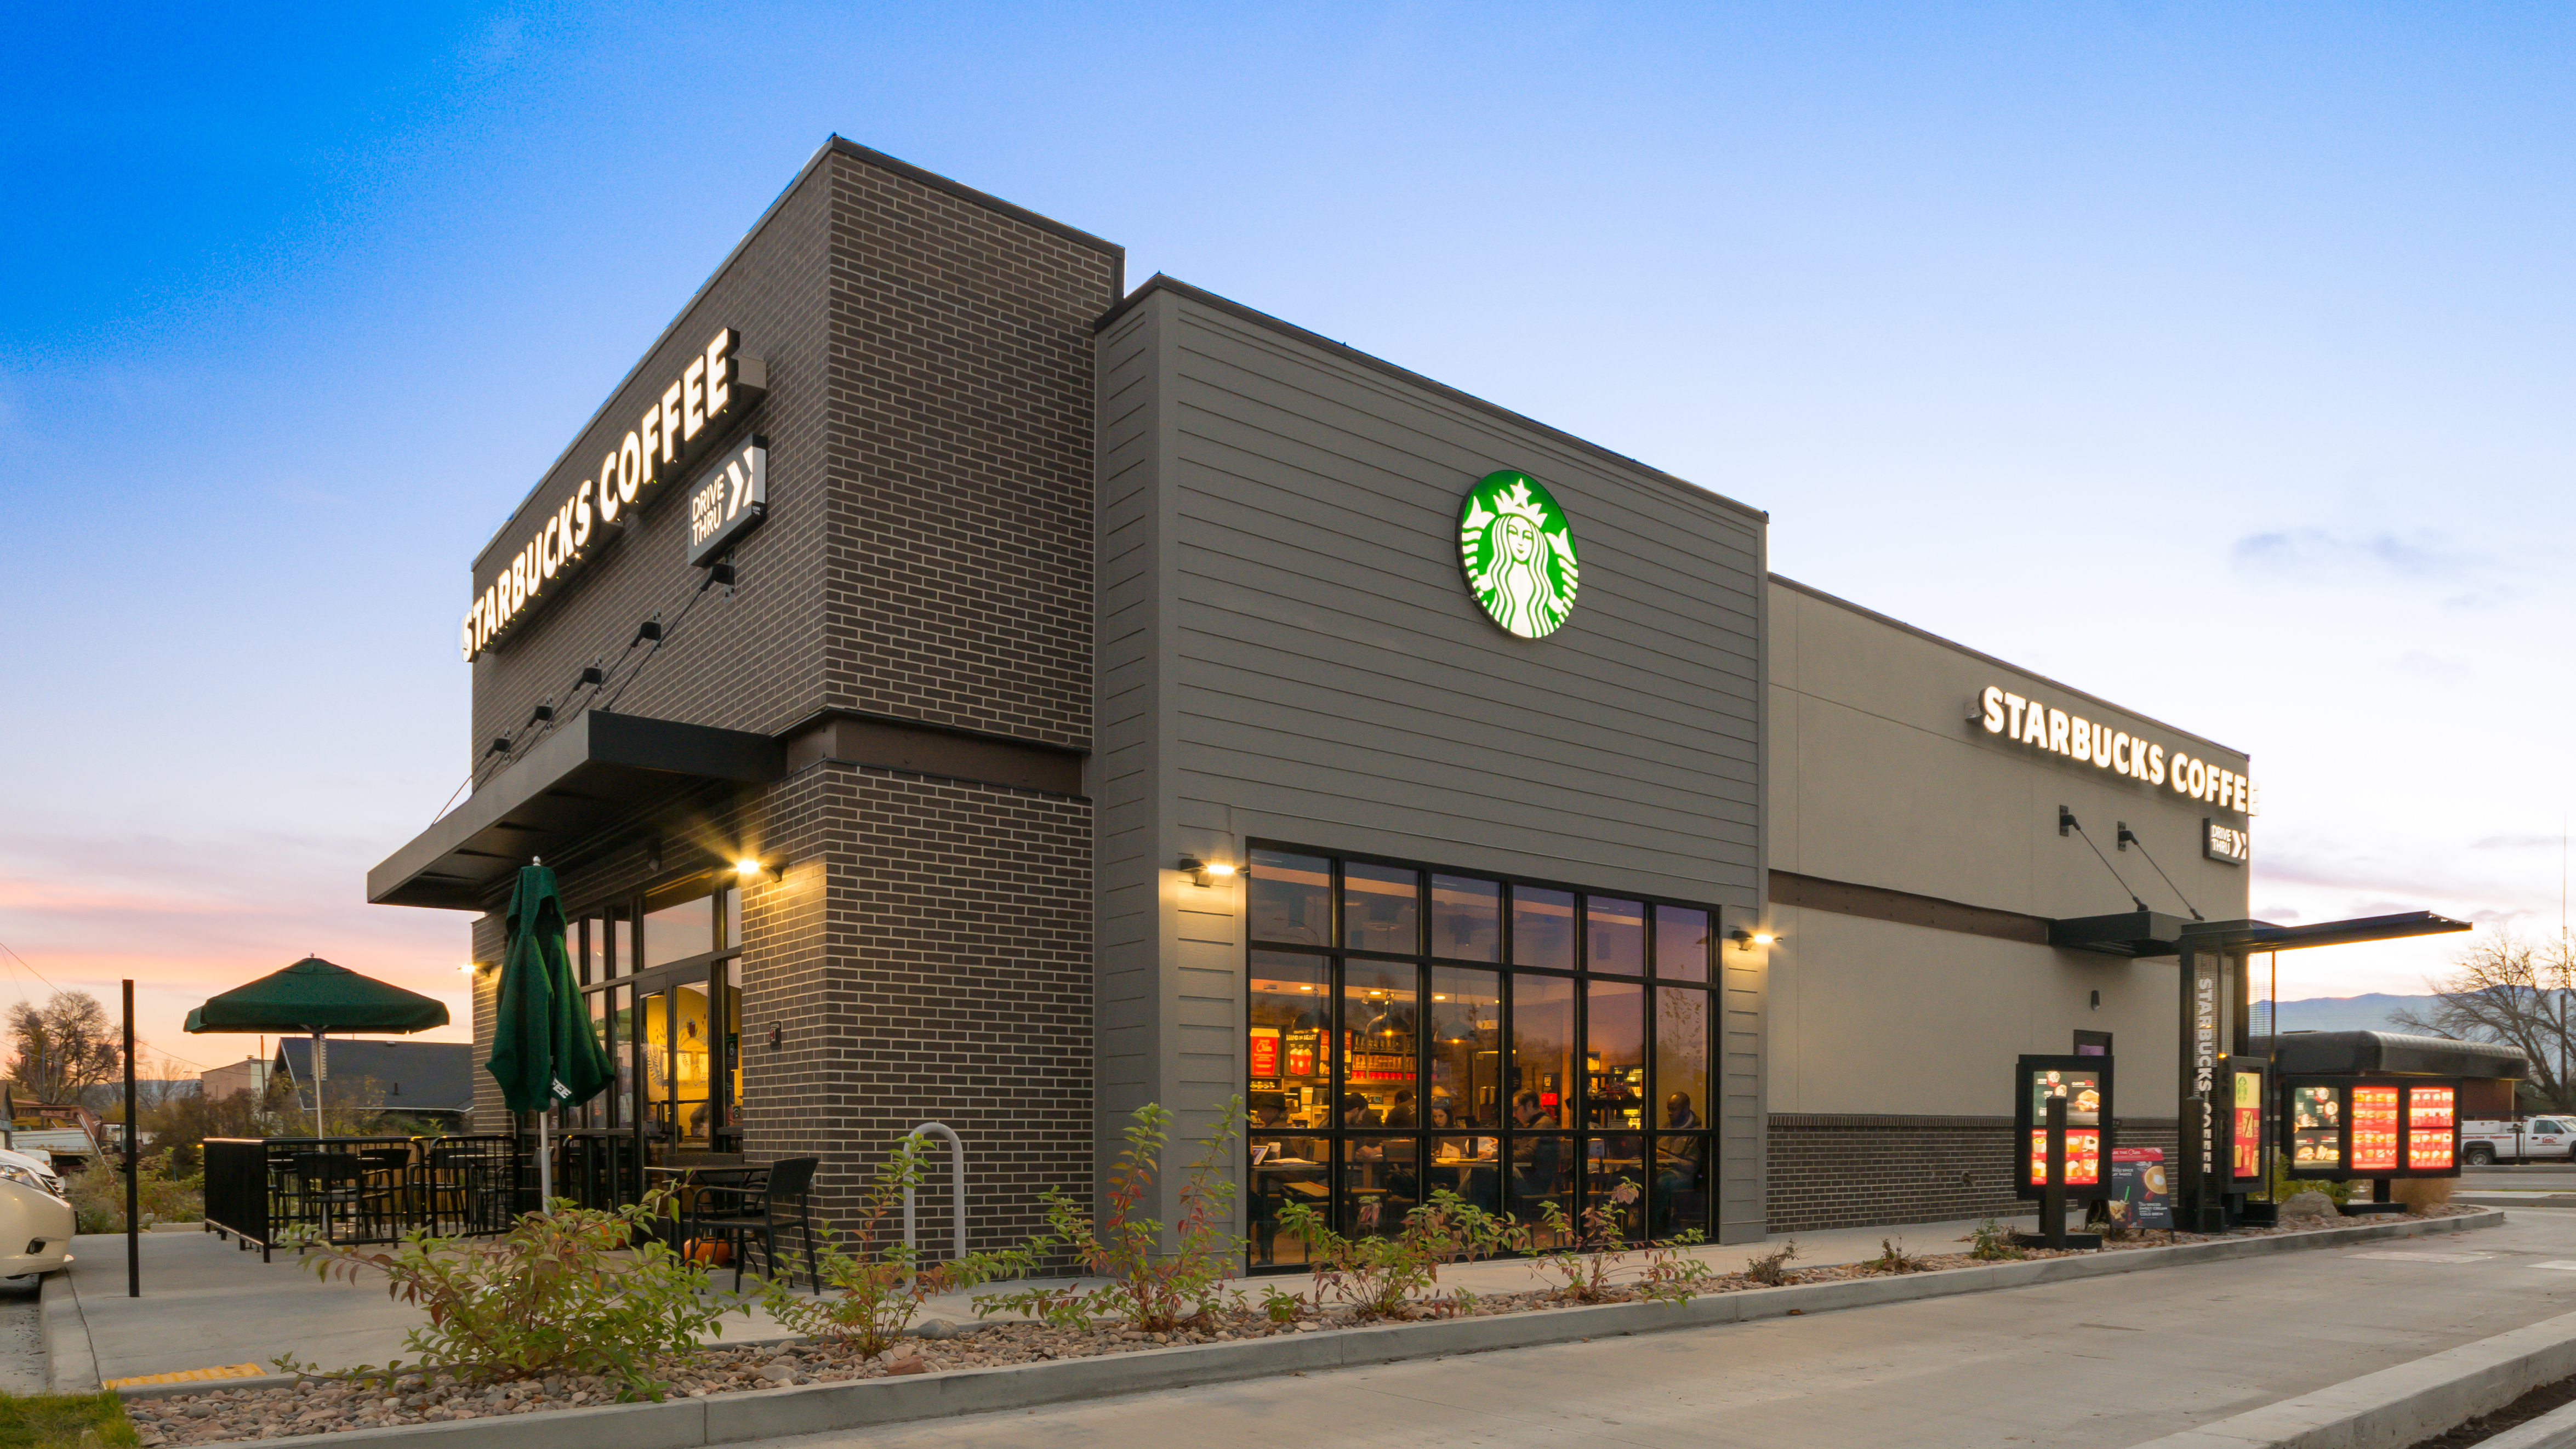 Starbucks - Logan, UT